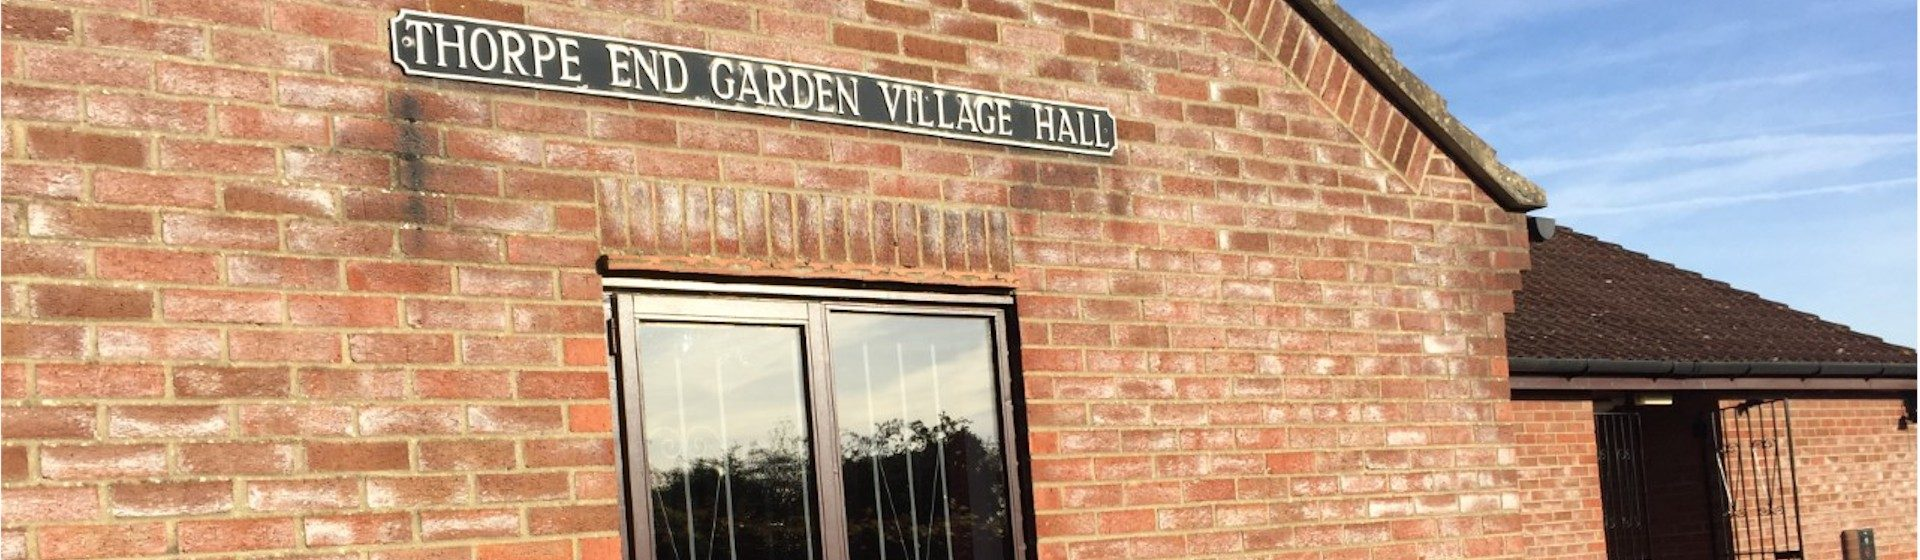 Thorpe End Village Hall